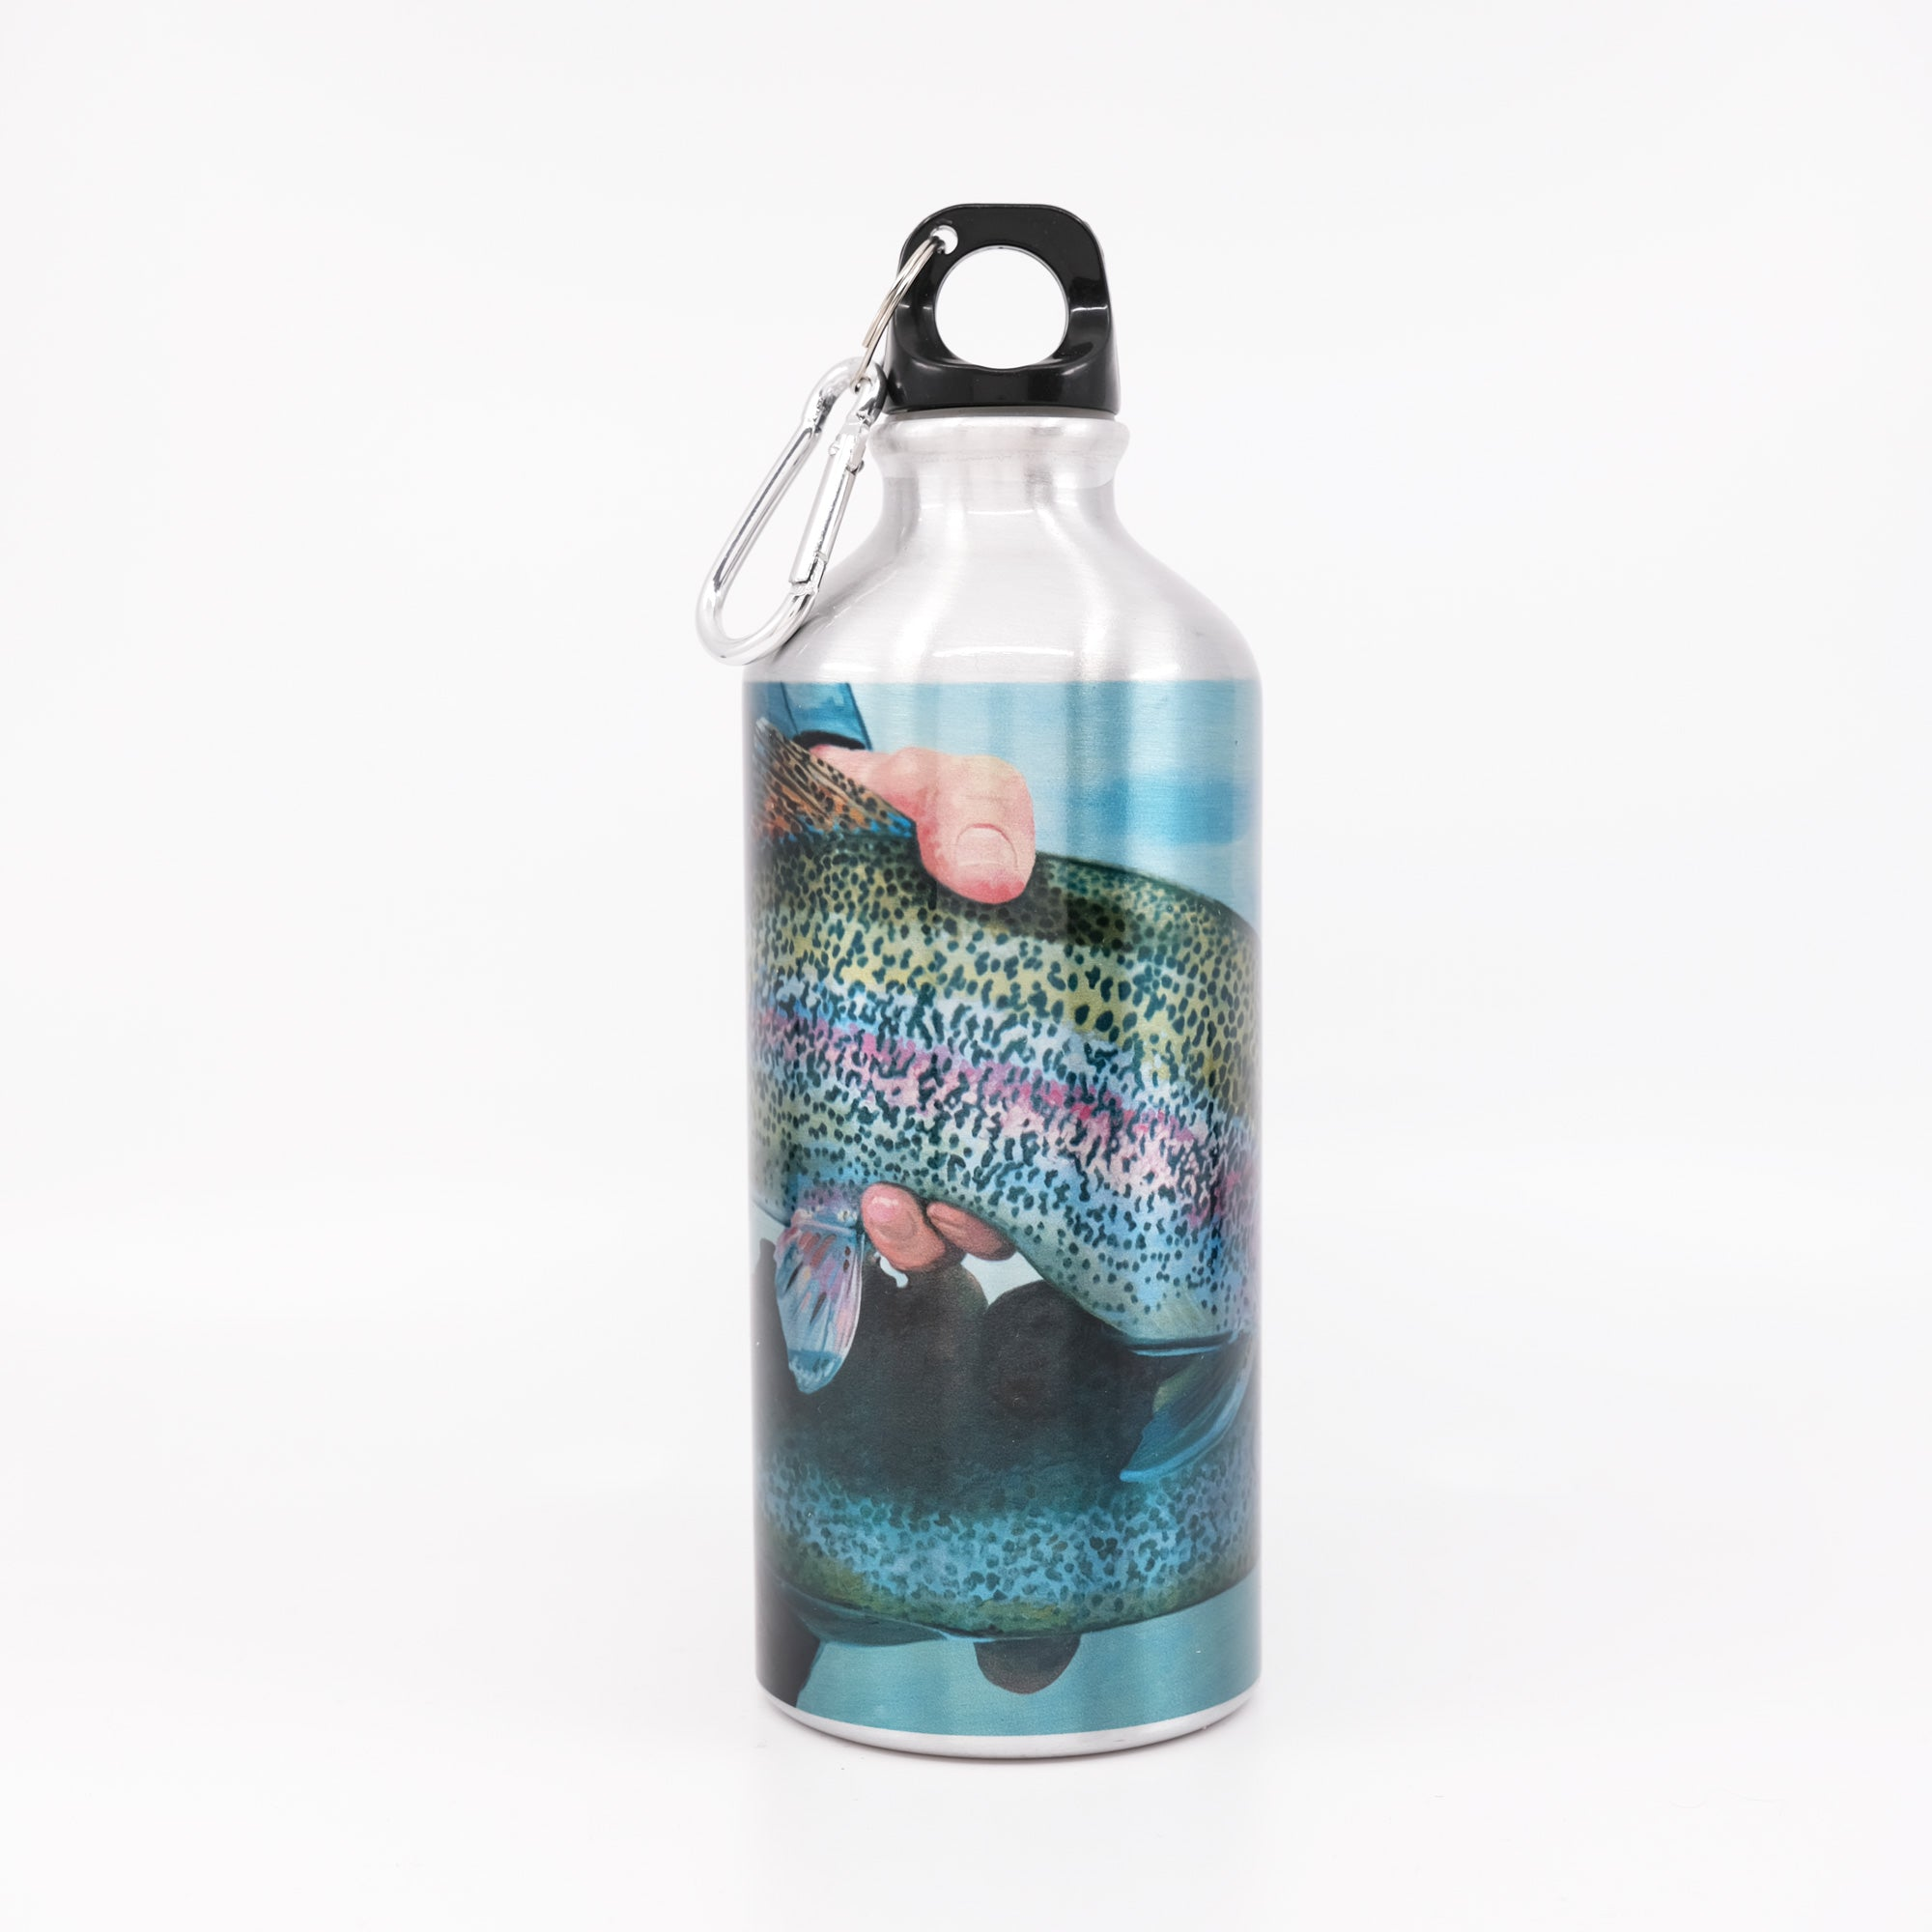 MFC Water Bottle - White's One Last Look (Rainbow)